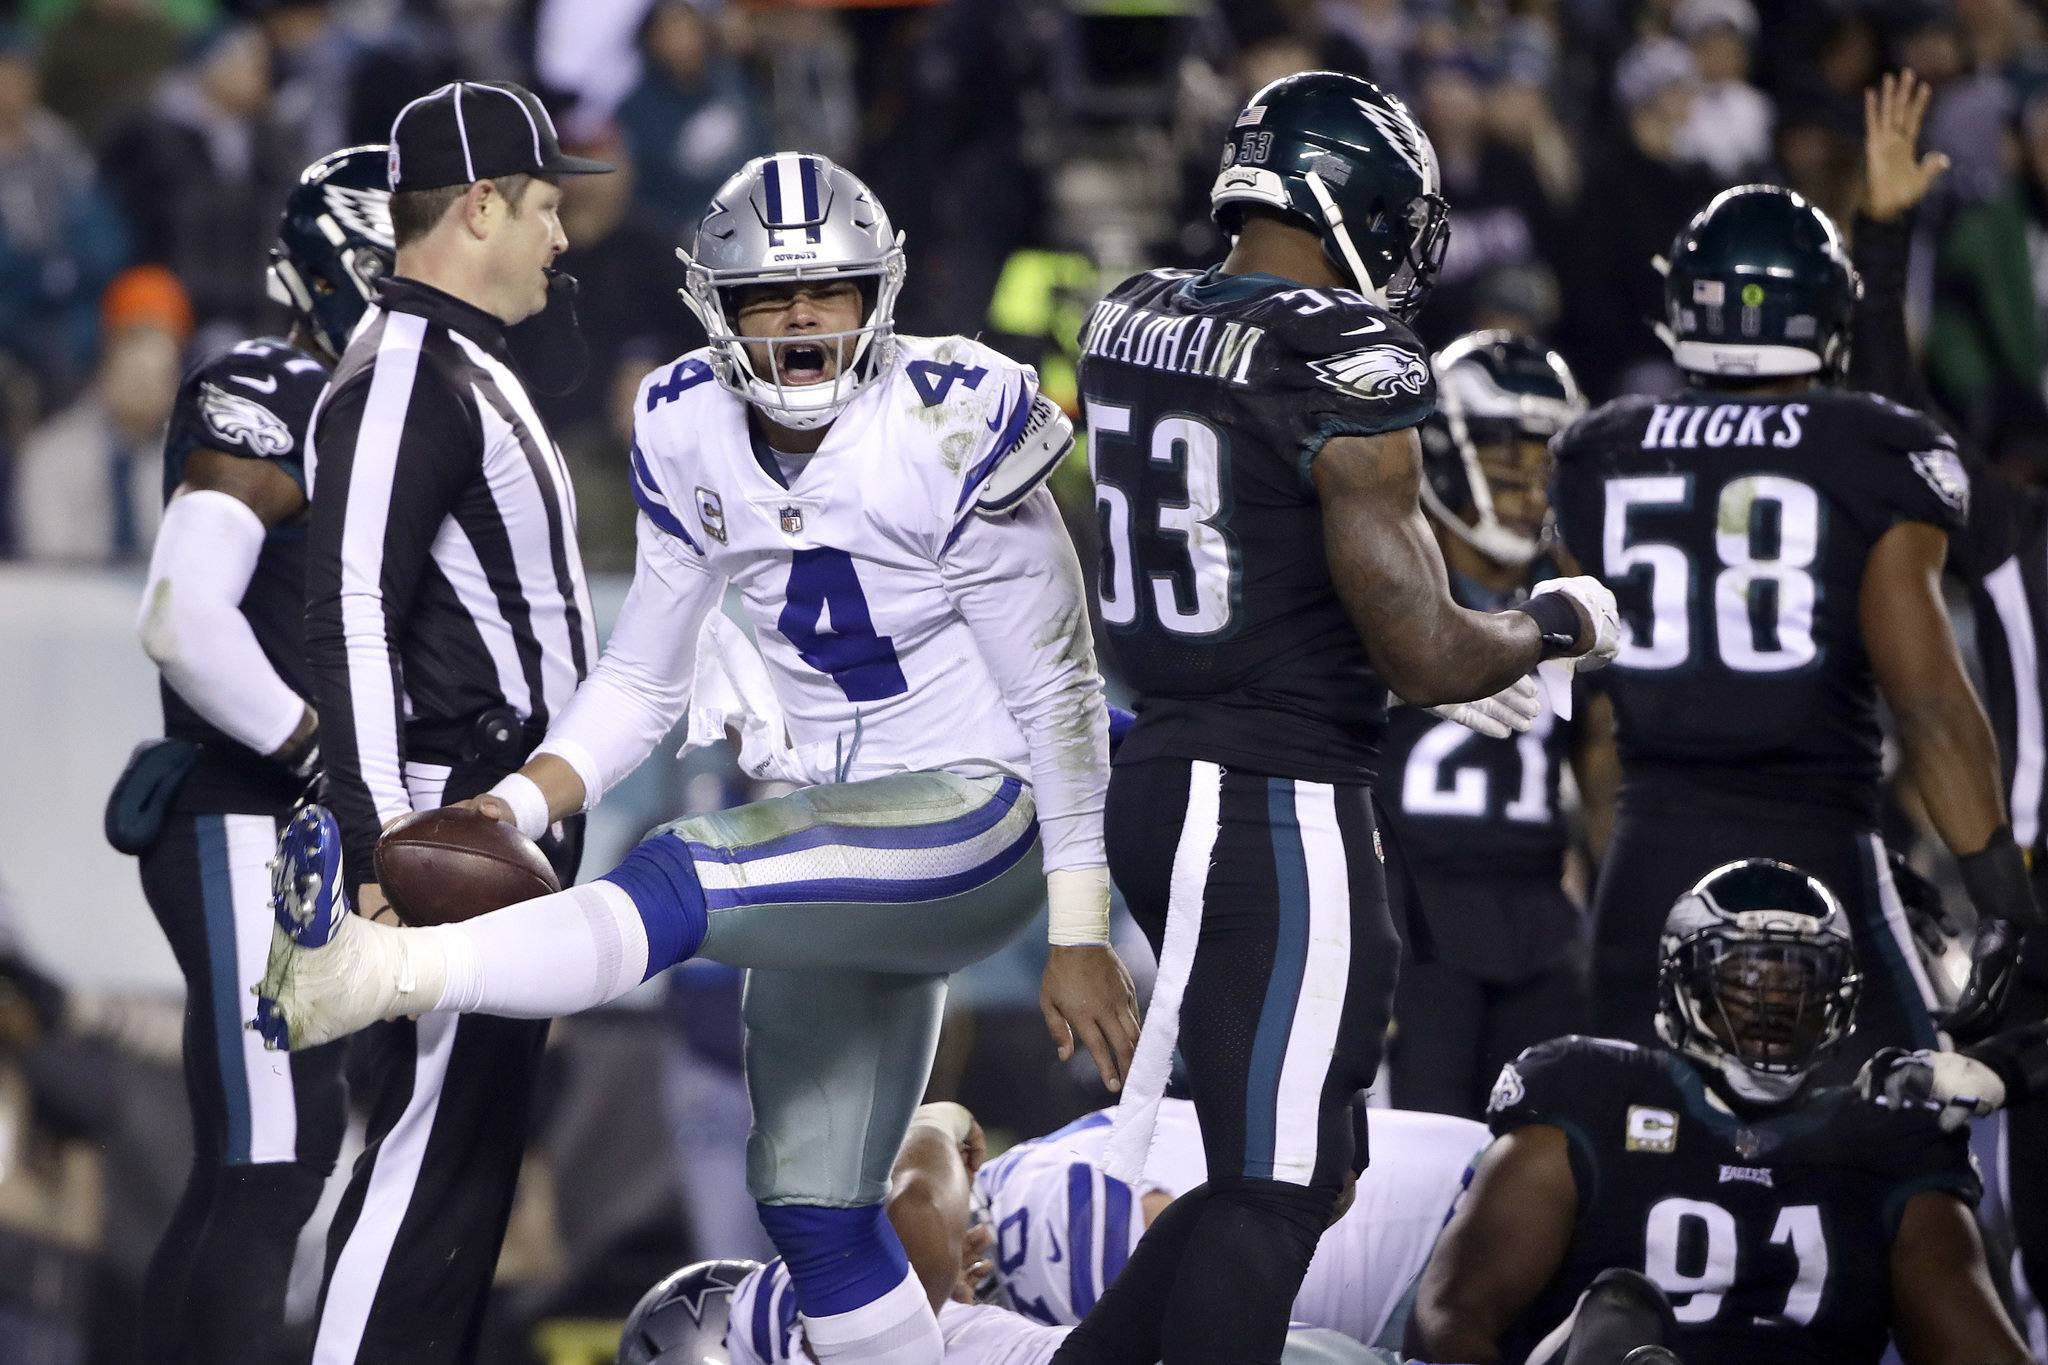 Sean-martin_dallas-cowboys_how-cowboys-set-up-high-stakes-division-meeting-with-eagles-at-home